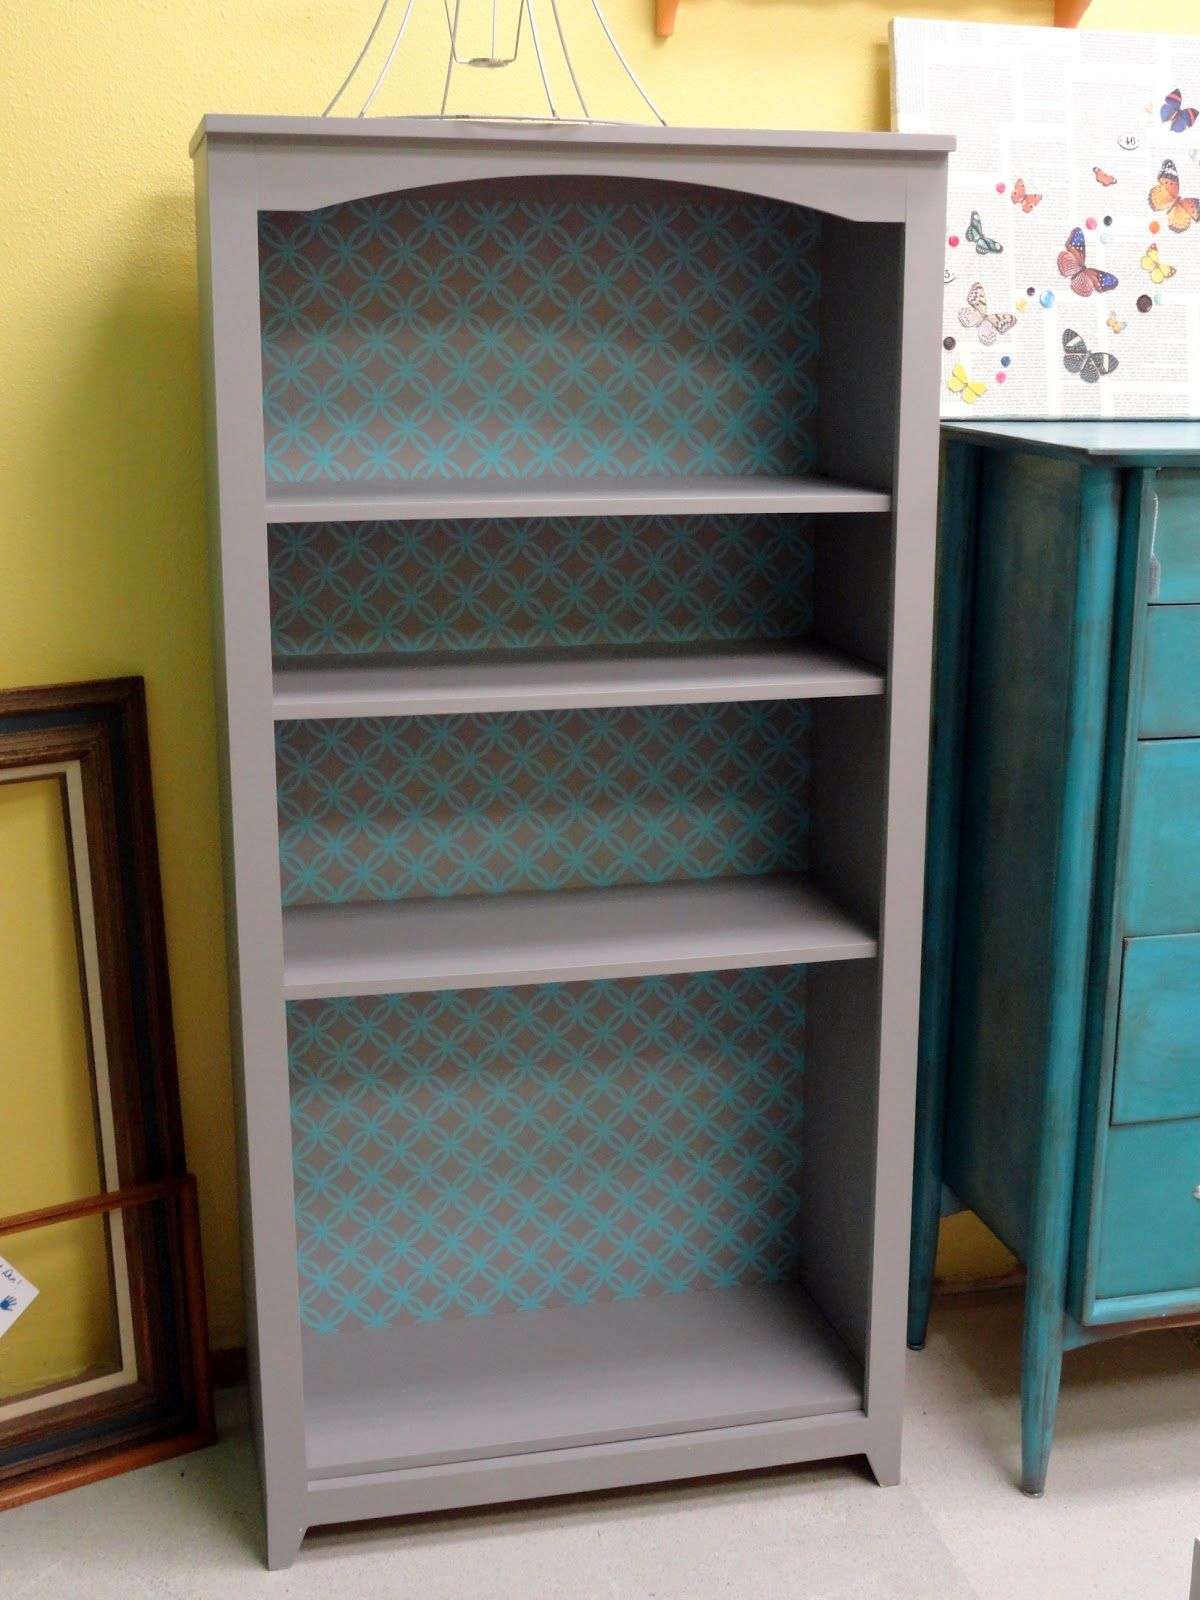 Painted bookcase with wallpaper background